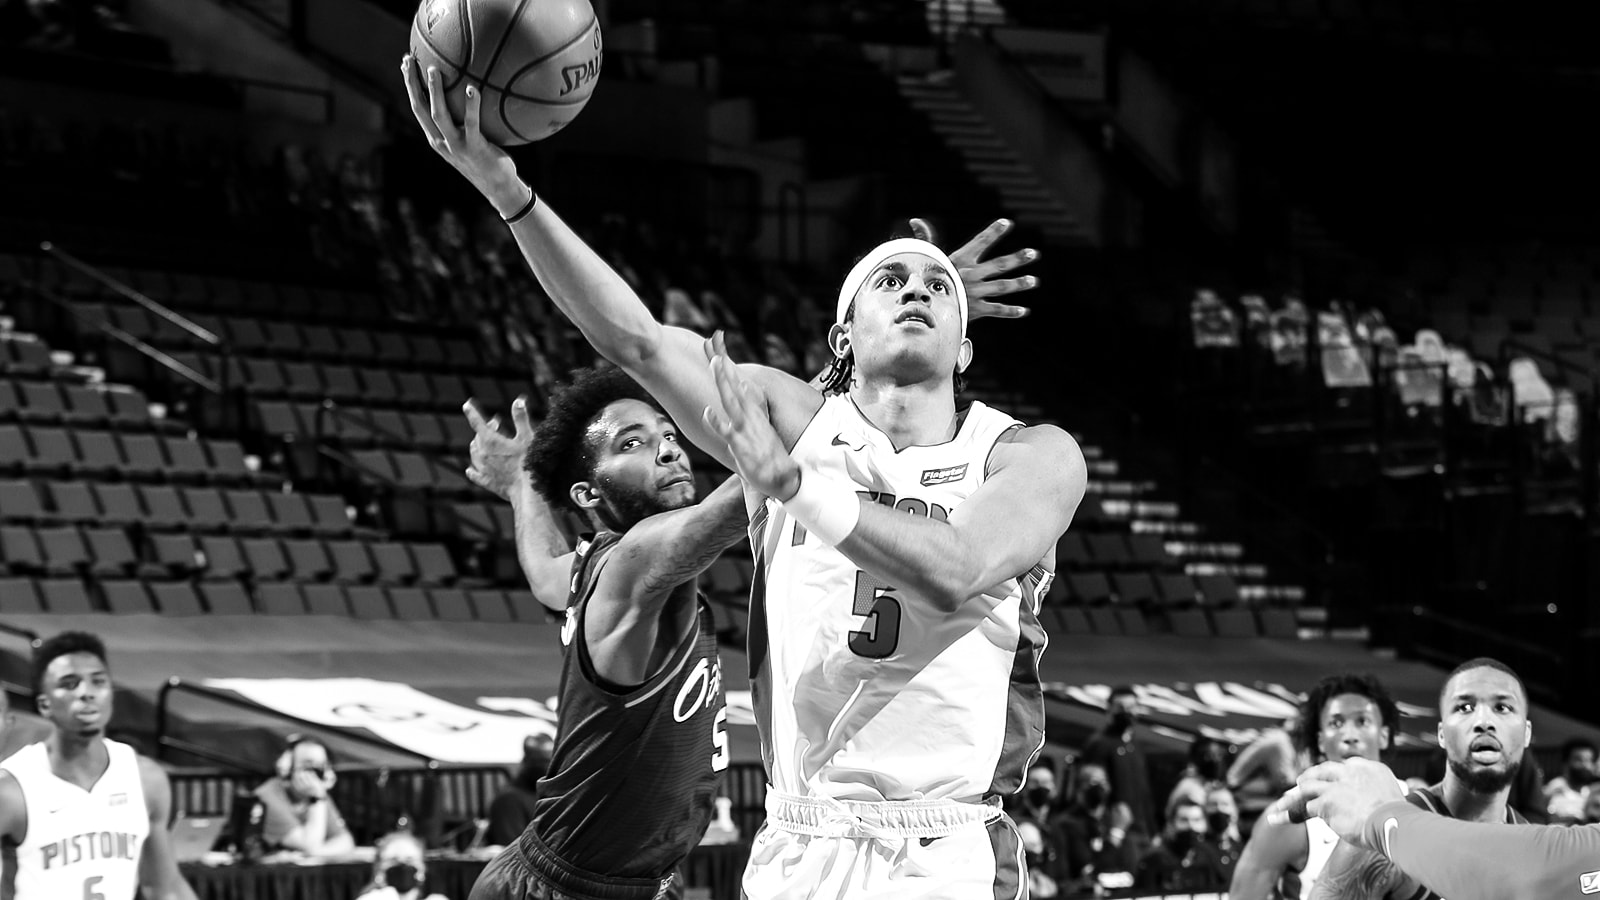 Hes instant offense off the bench  Frank Jackson finding his niche as Pistons bench scoring threat